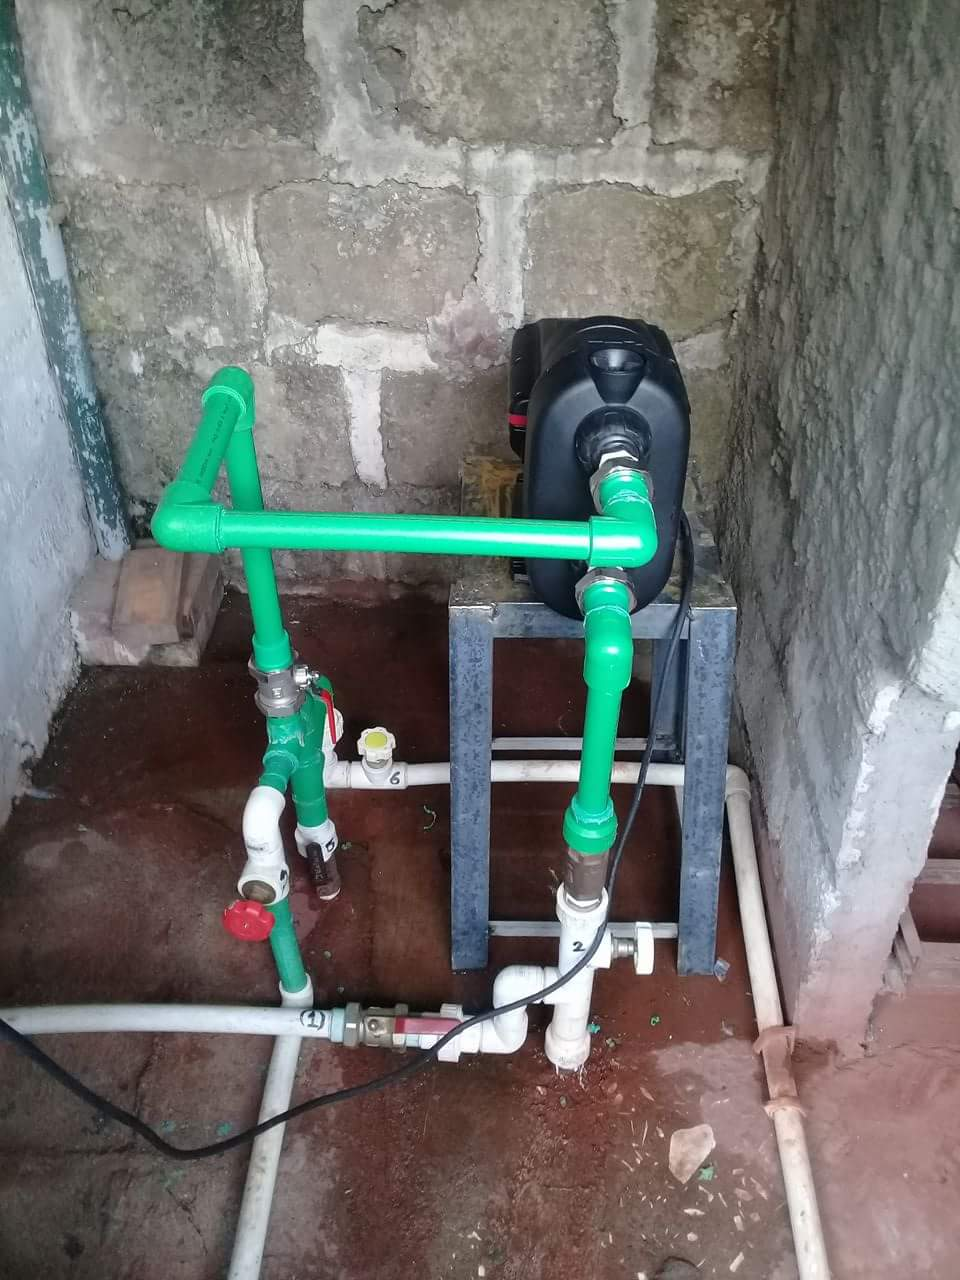 Grundfos Scala 2 Booster Inverter Pump Installation – Brgy. Ugong, Valenzuela City